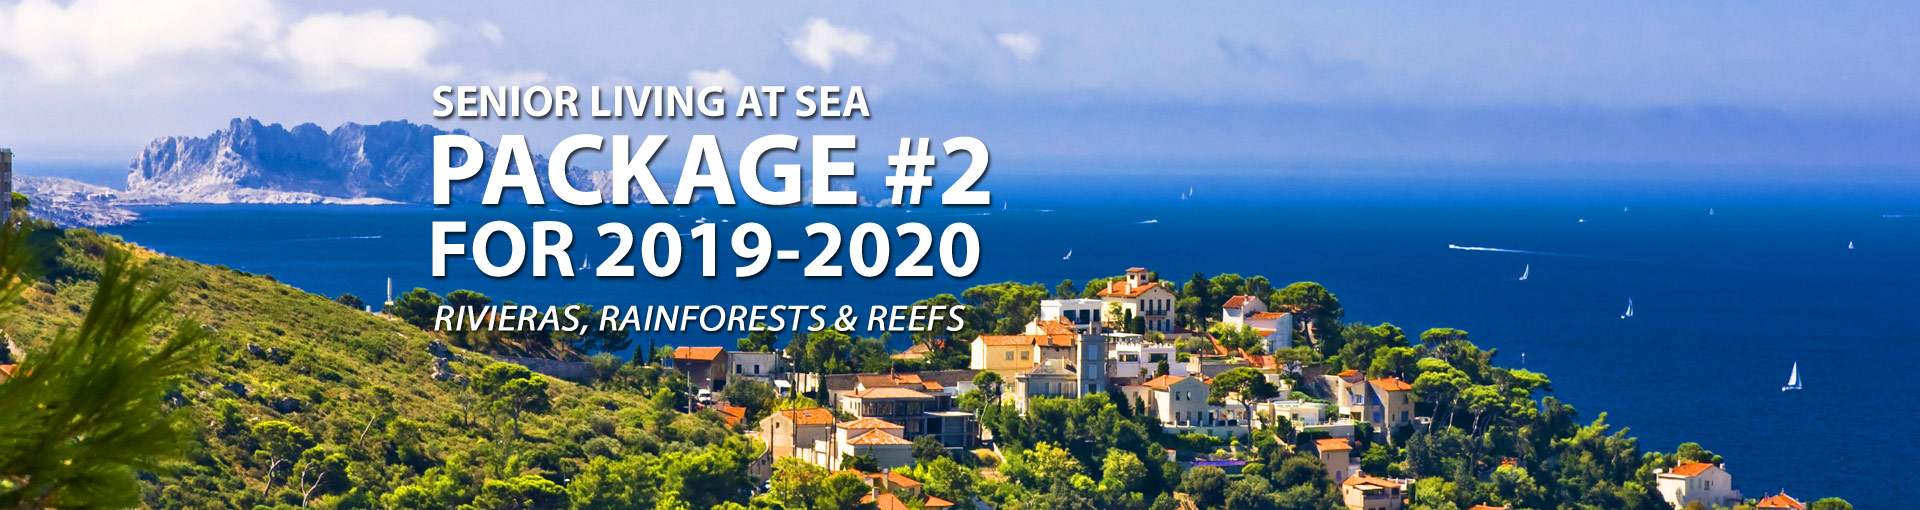 Senior Living at Sea - Package 2 for 2019-2020